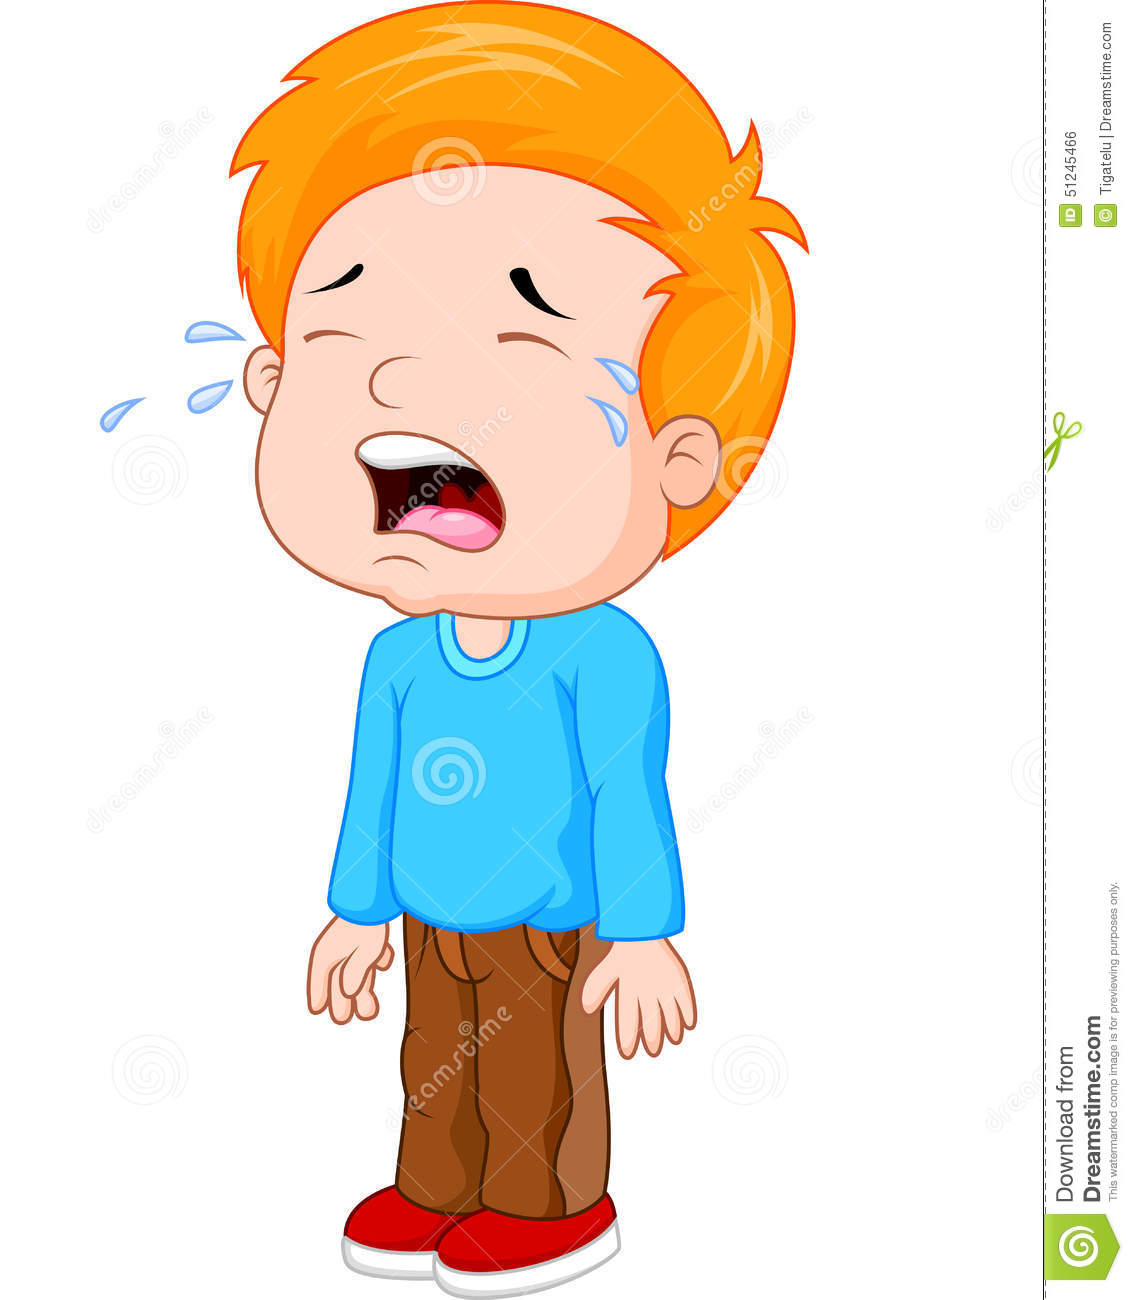 Crying clipart cry kid. Free download best